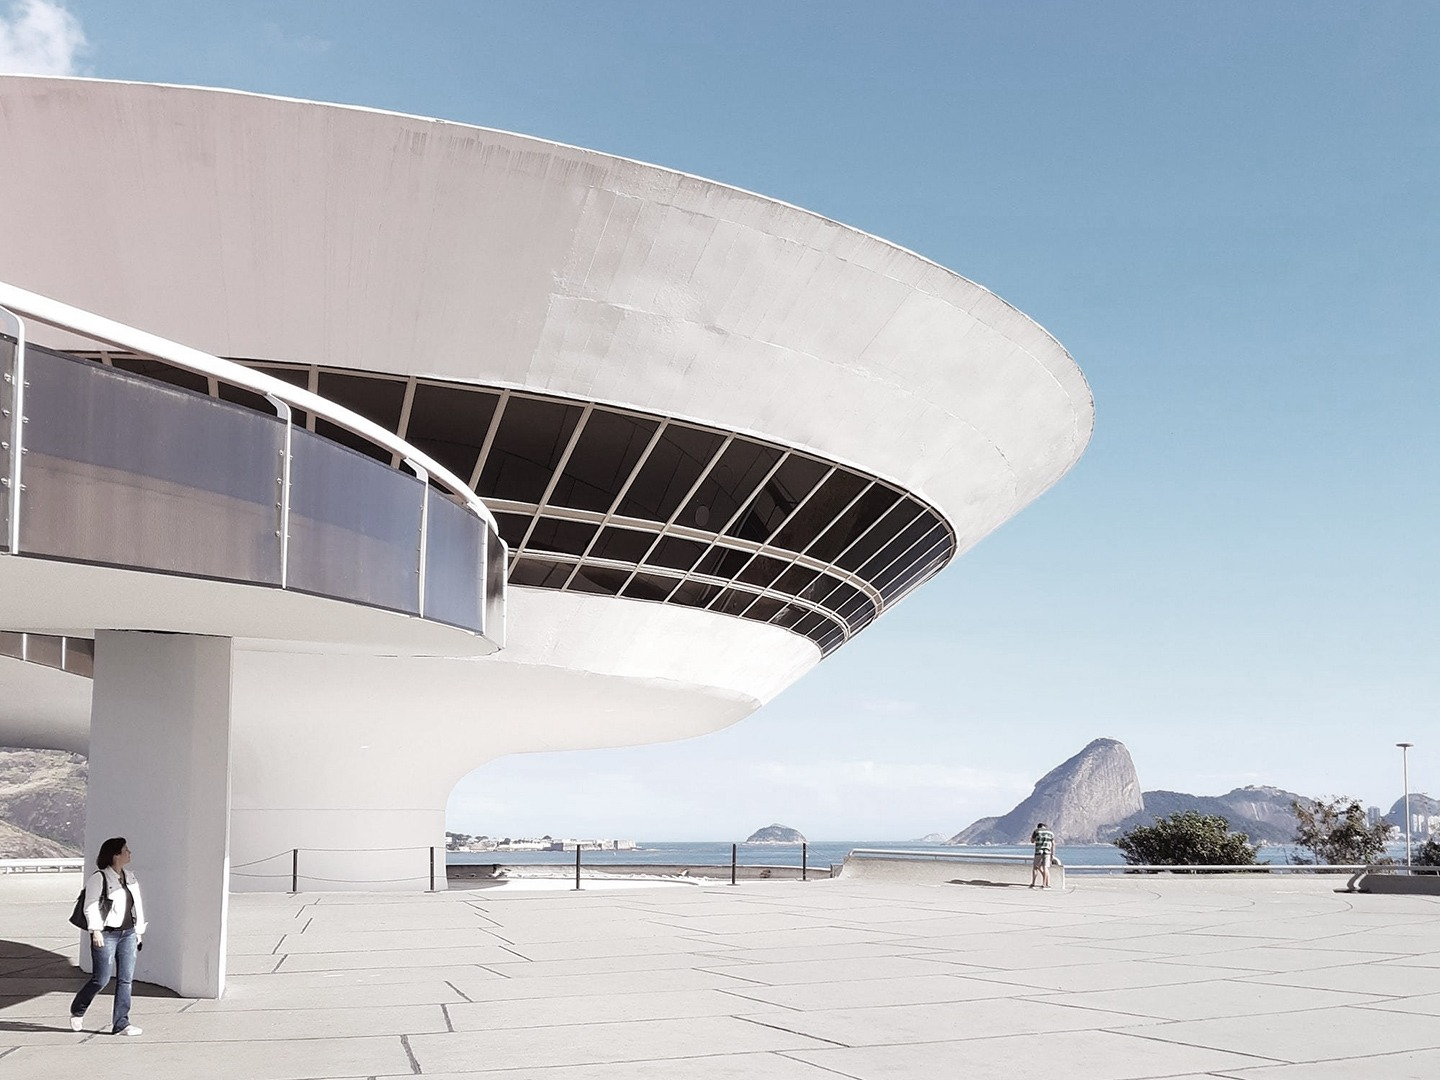 MAC Niteroi Niemeyer 1